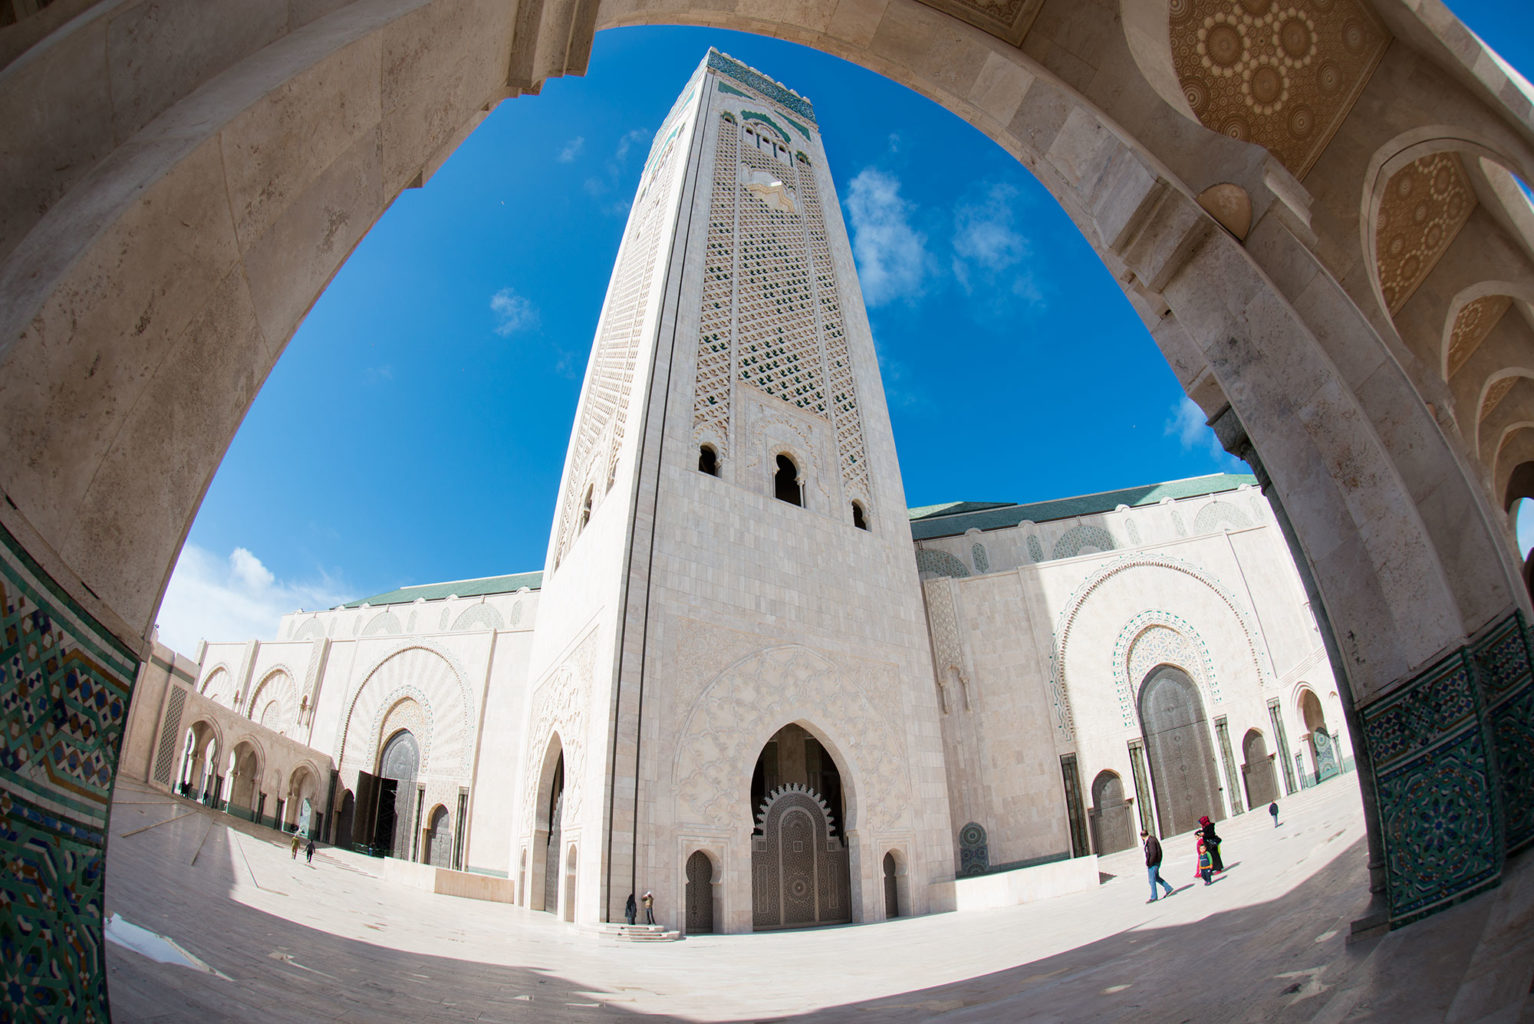 Hassan II Mosque in Casablanca, Morocco